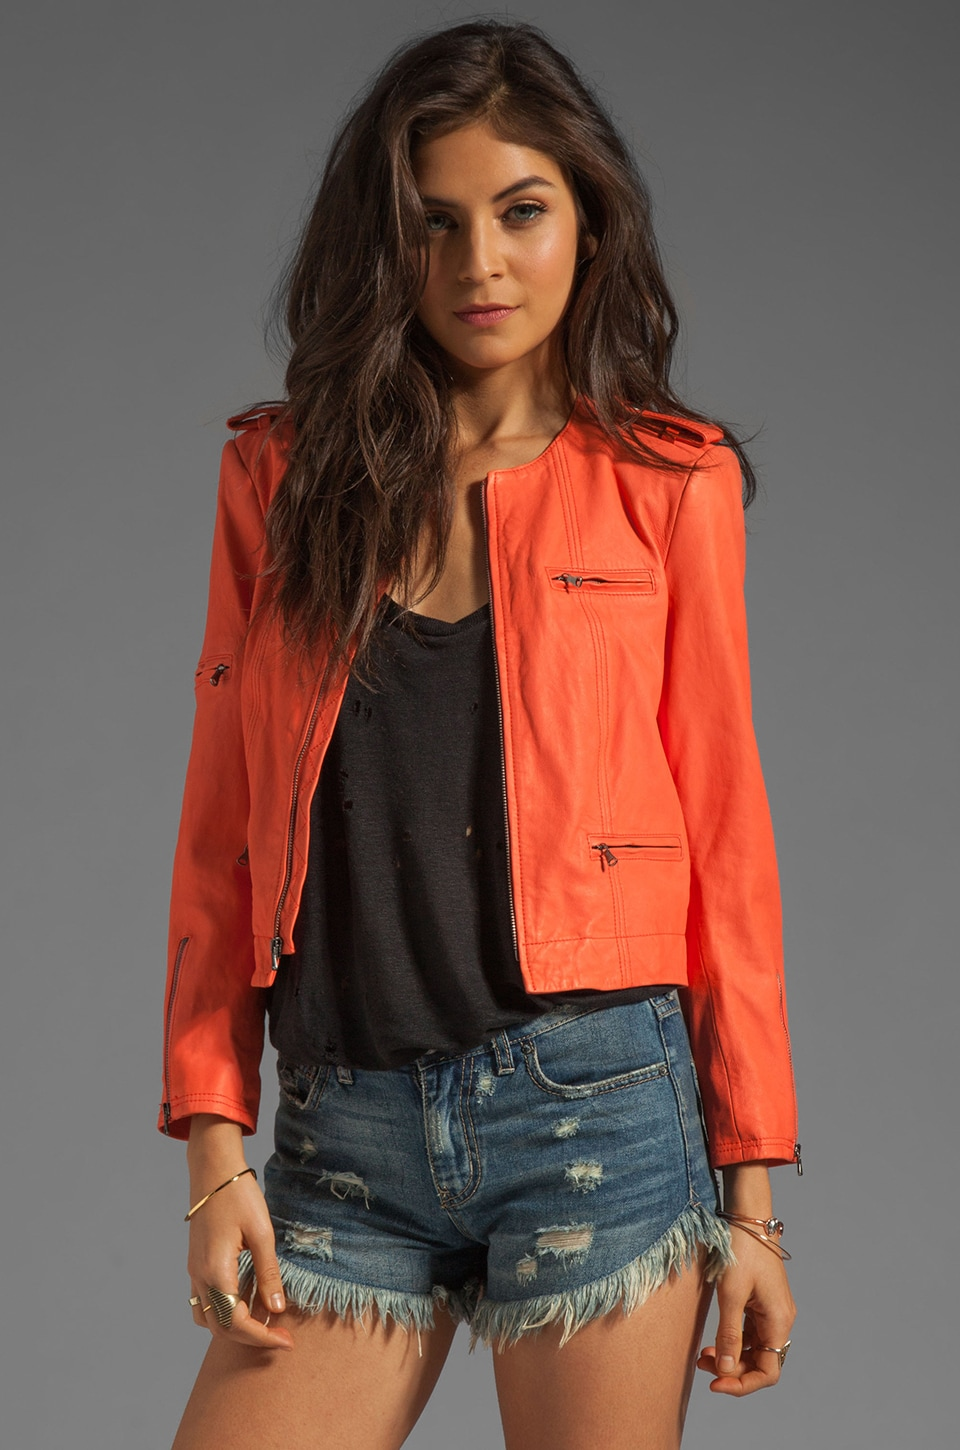 Alice + Olivia Cam Zipper Sleeve Biker Jacket in Orange